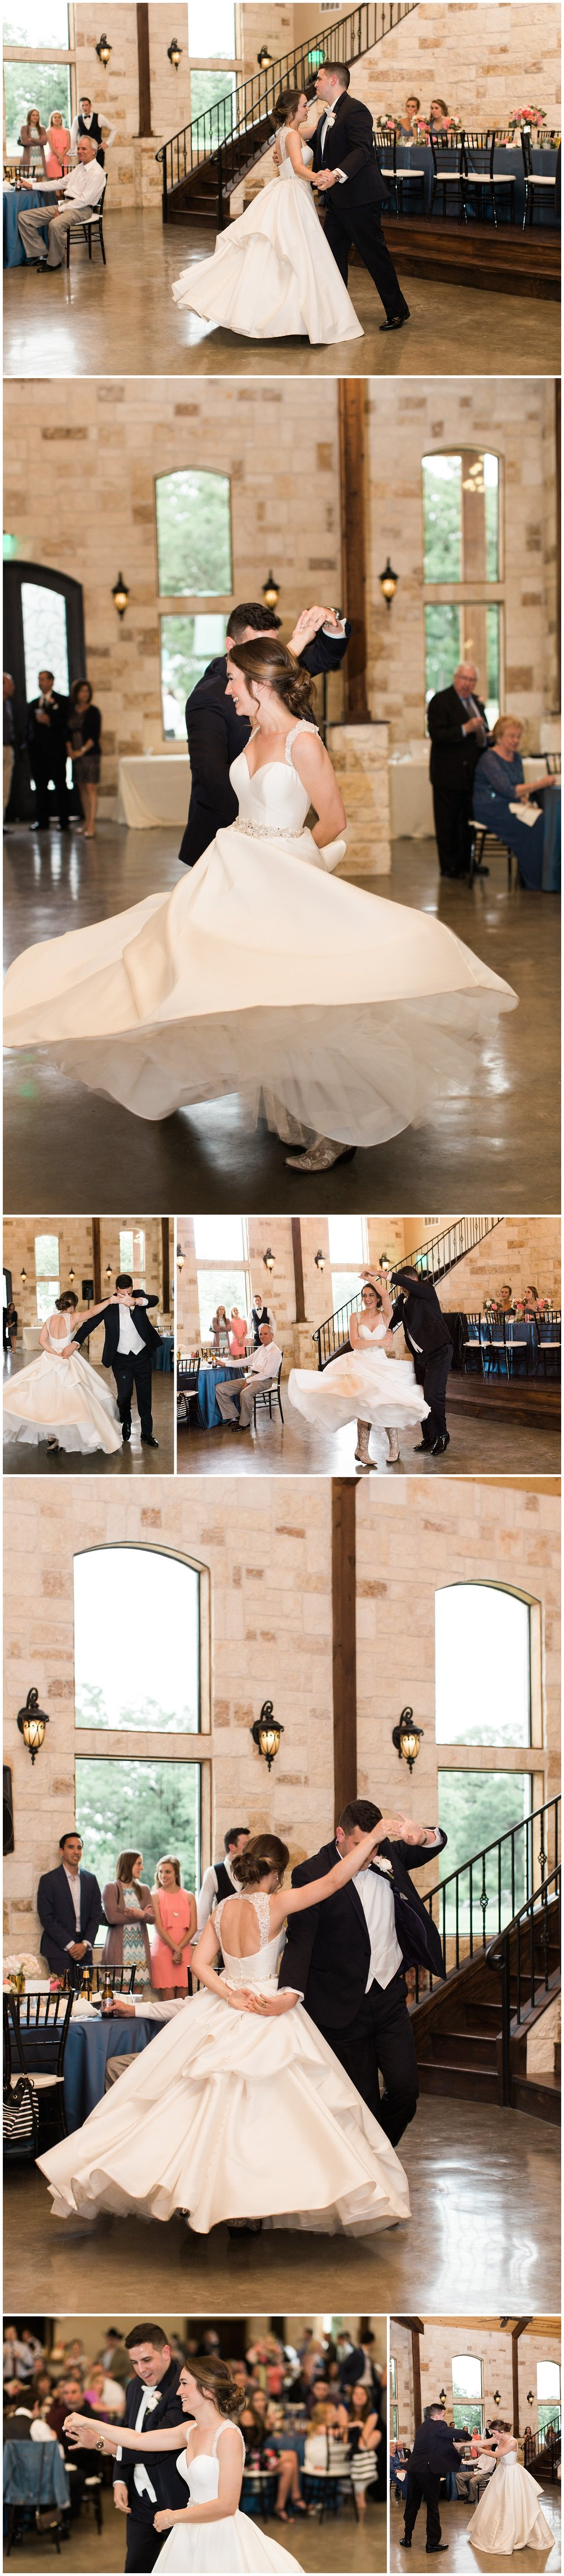 Brownstone_Reserve_Wedding_Kristina_Ross_Photography_0032.jpg